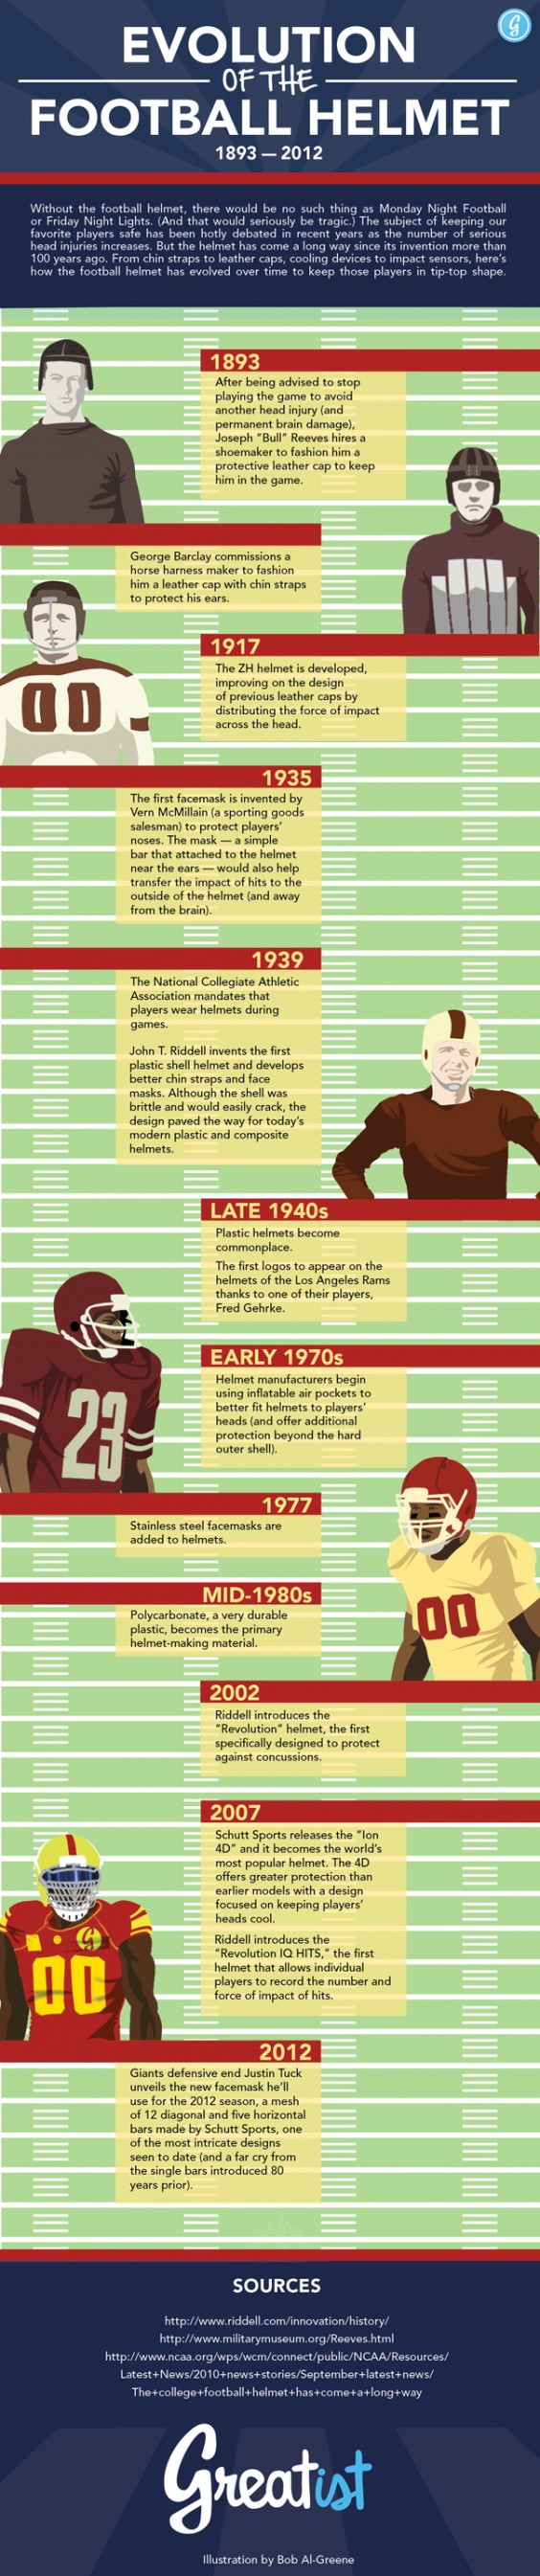 Football Helmet Evolution Infographic